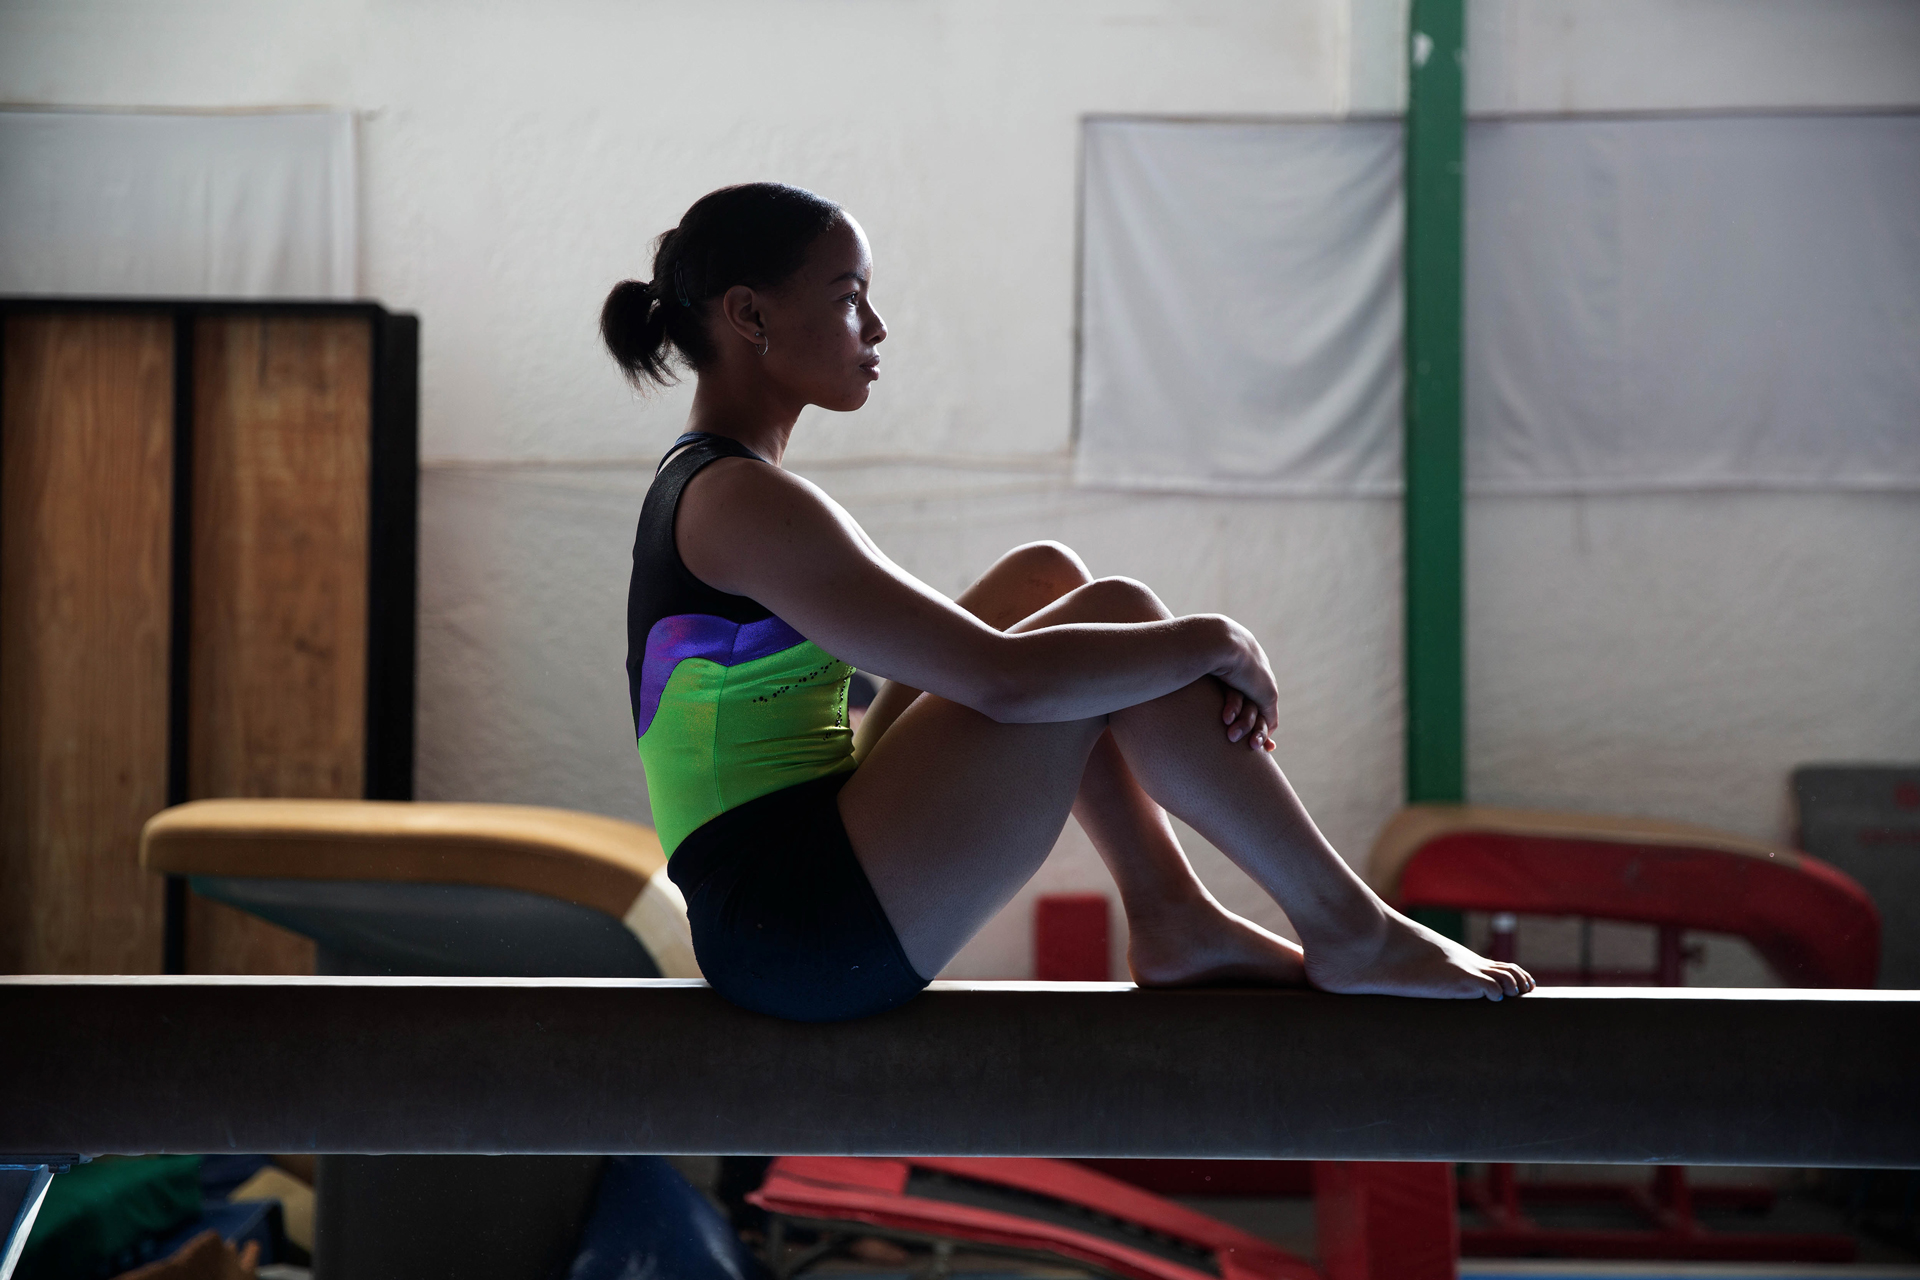 19 November 2019: Caitlin Rooskrantz had a fall on the beam at the World Championships but 'fought to the bitter end' and did a 'really good bar routine' that she believes got her into the Olympics.